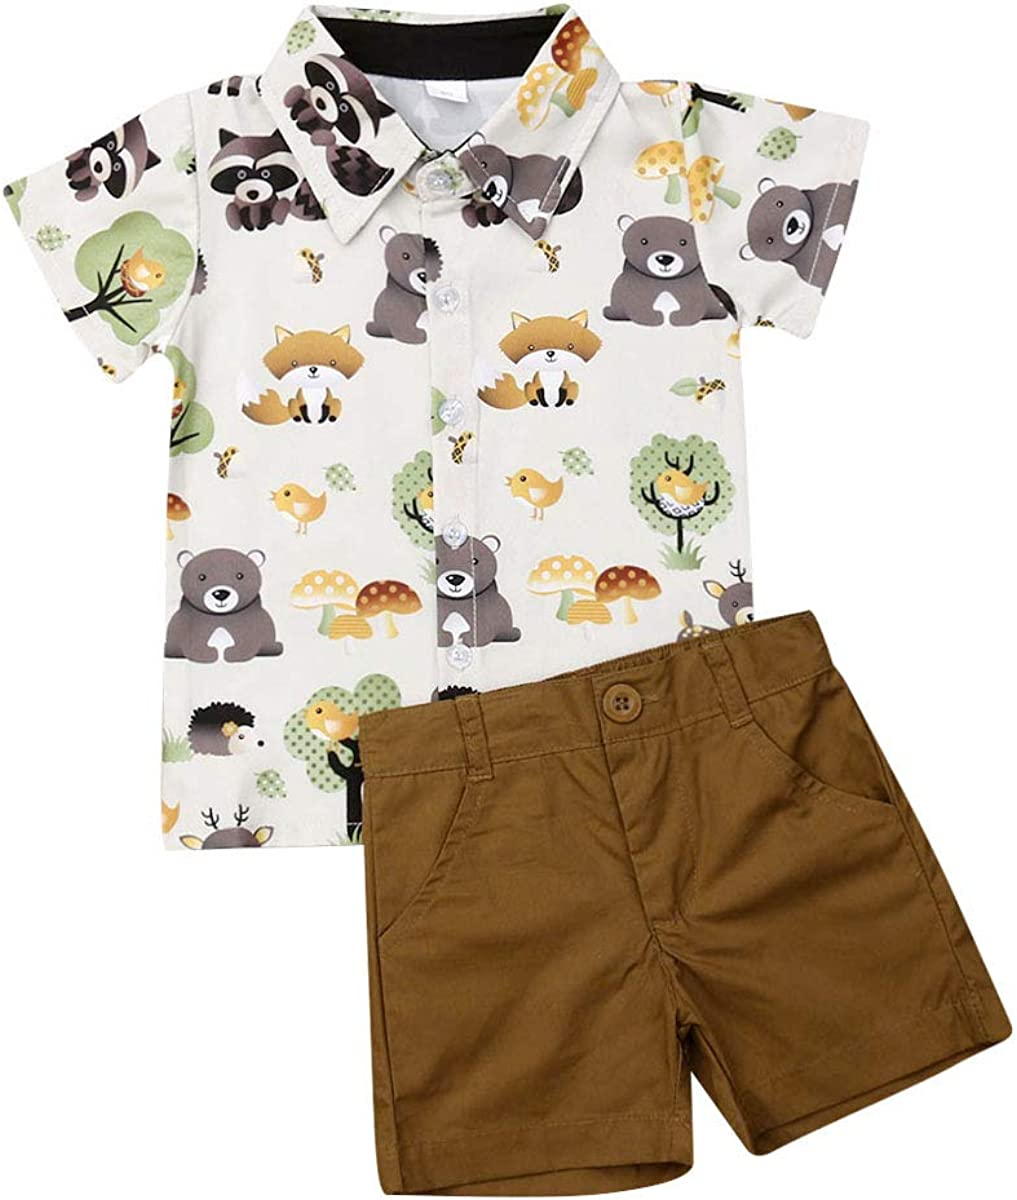 Toddler Baby Boy Summer Clothes 2PCS Set Cartoon Animals Printed Short Sleeve Lapel Collar Button Down Shirt Solid Colour Brown Short Pants for 1-6 Years